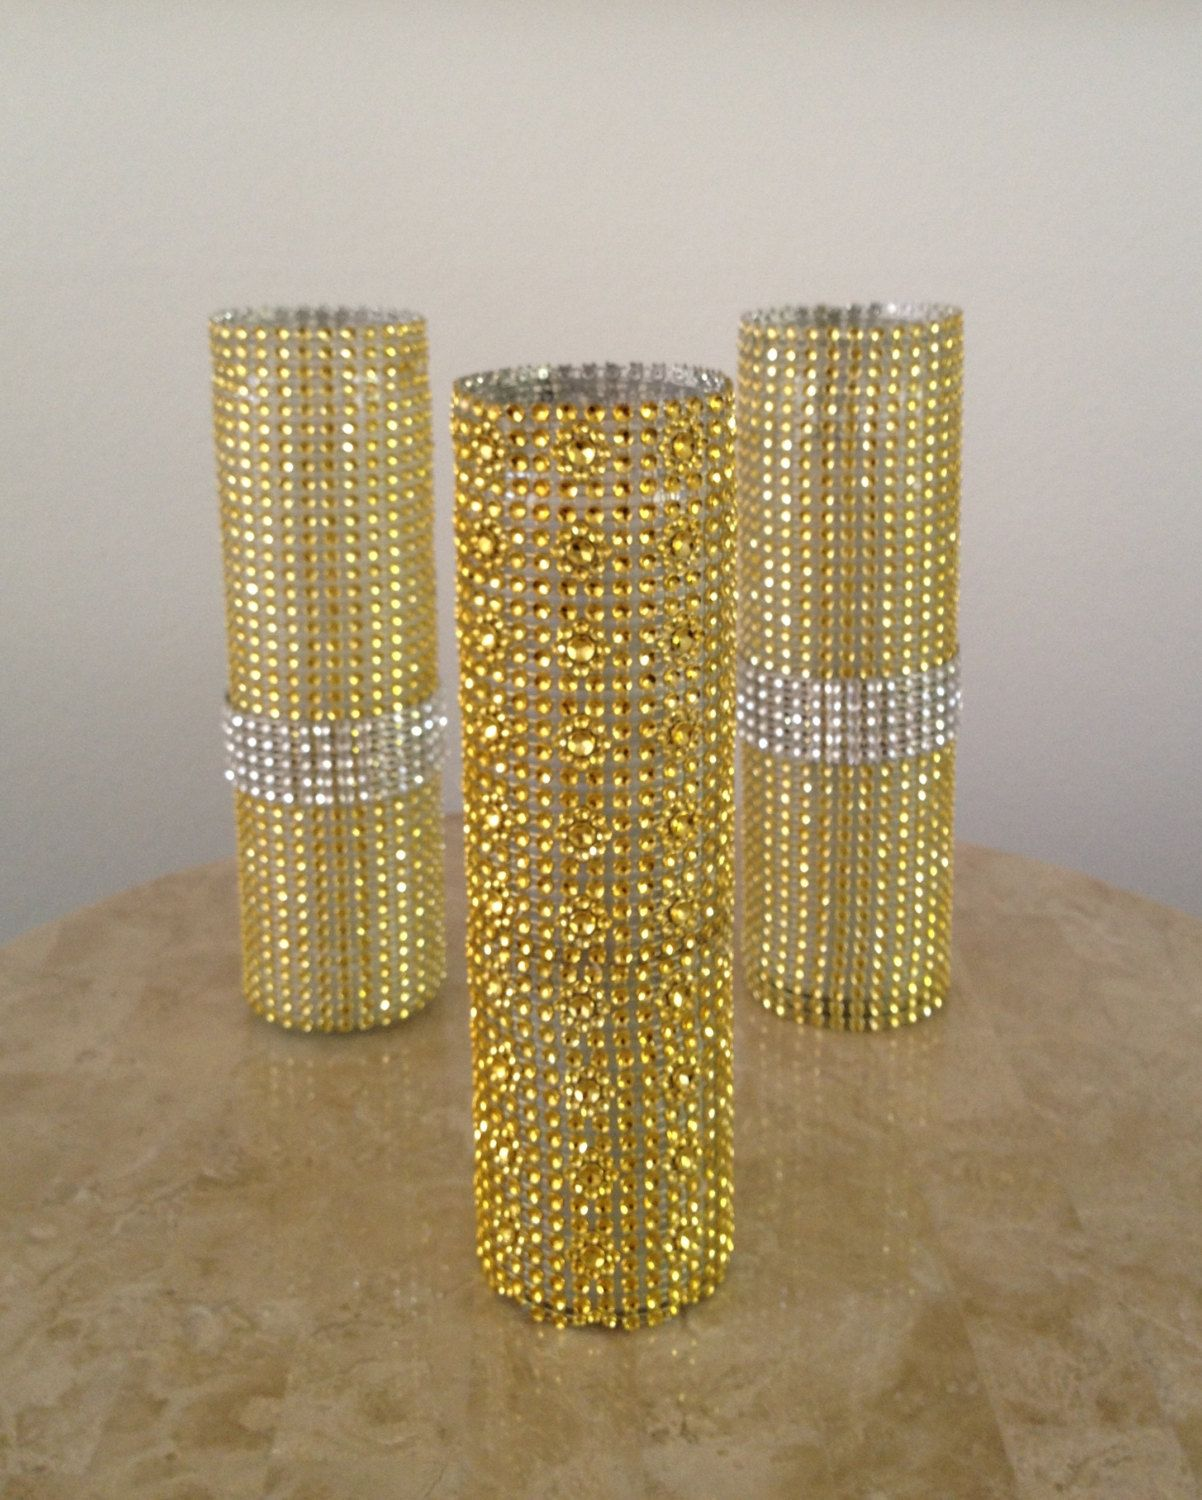 Bling Wedding Decor Crystal Centerpieces Rhinestone Candles And Vases Can Use Gold Paper Too